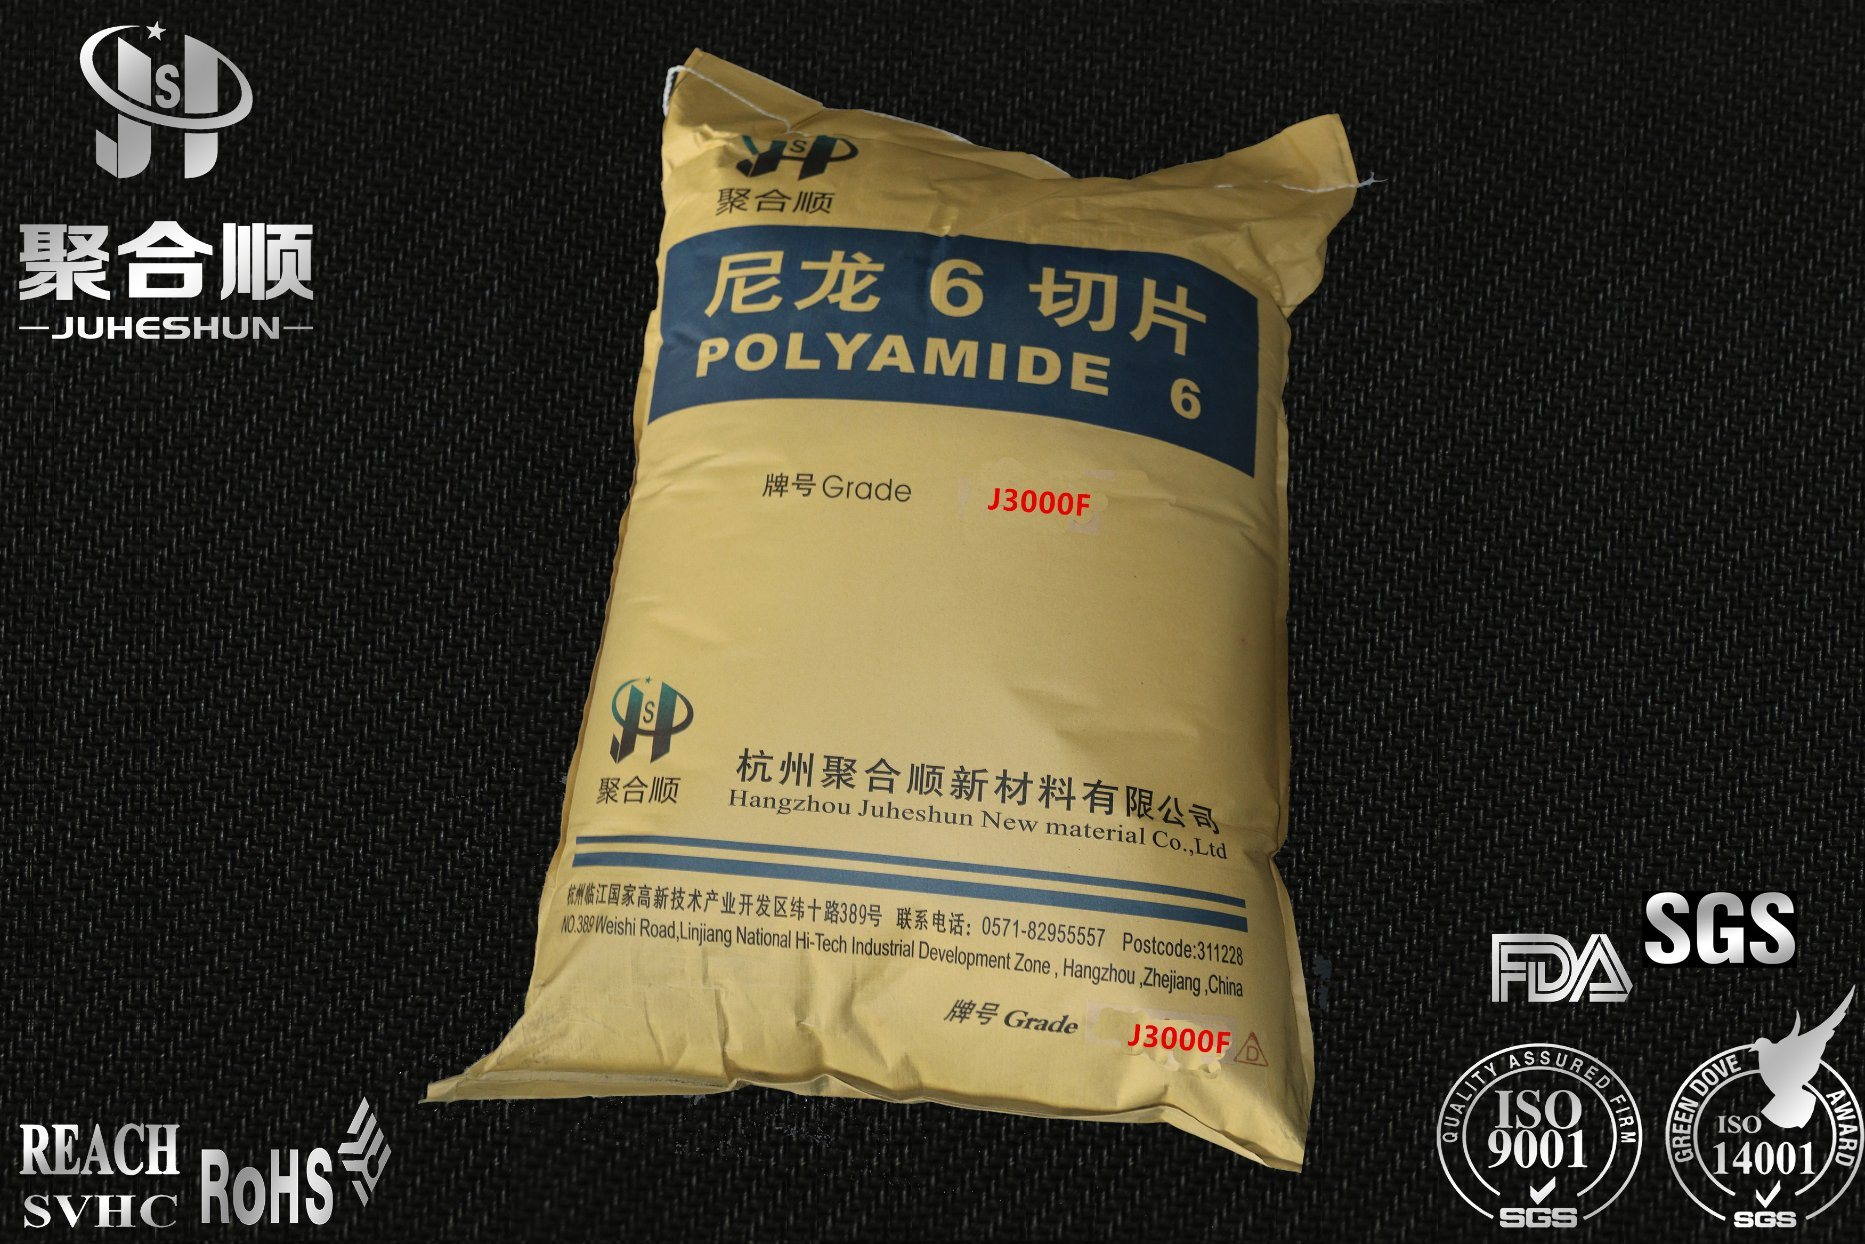 J3000f/PA6/Nylon-6/Polyamide Granules/Pellets/Nylon6 Chips/Slice/Film Grade Nylon6 Chips